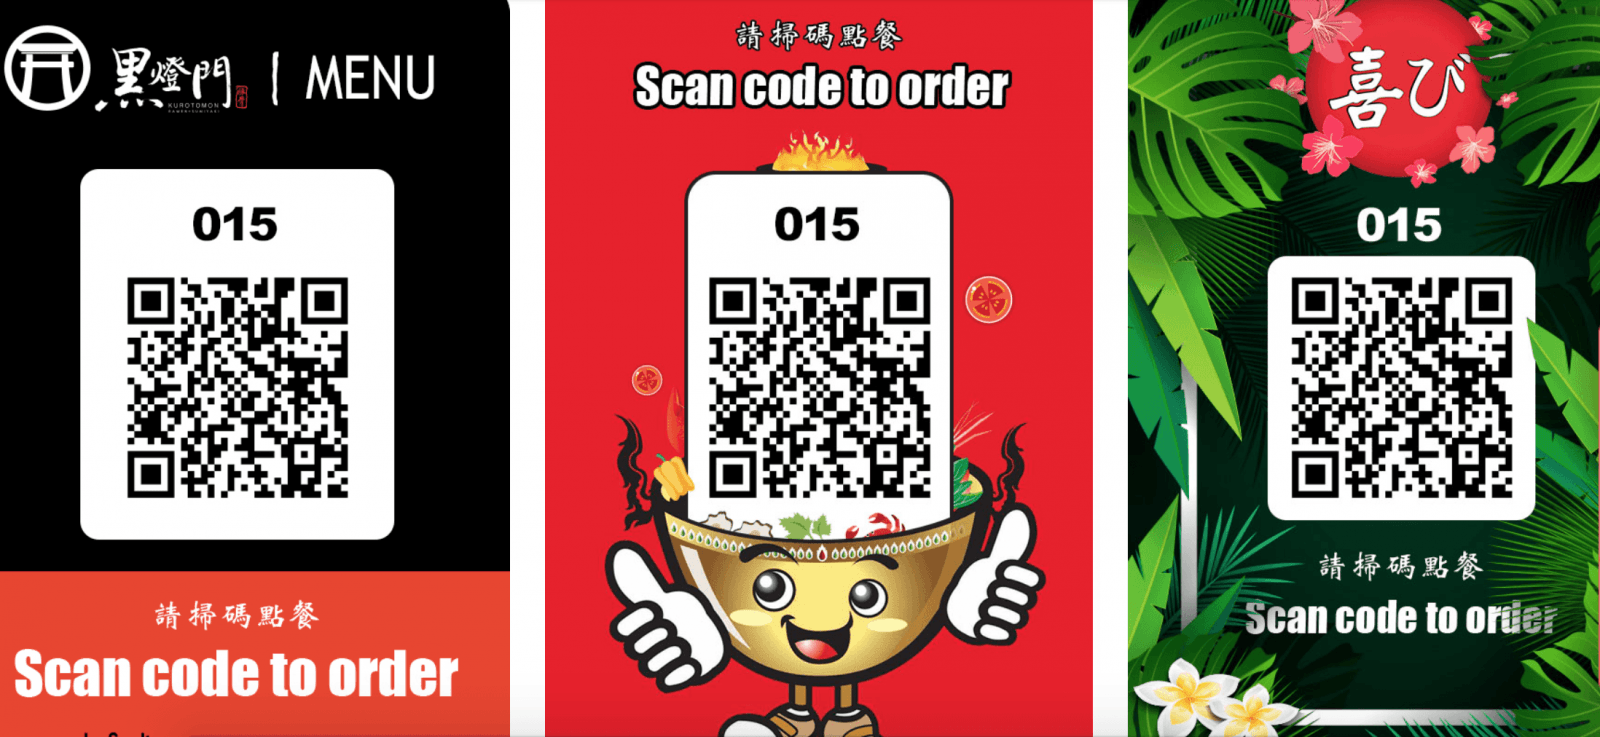 QR ordering China